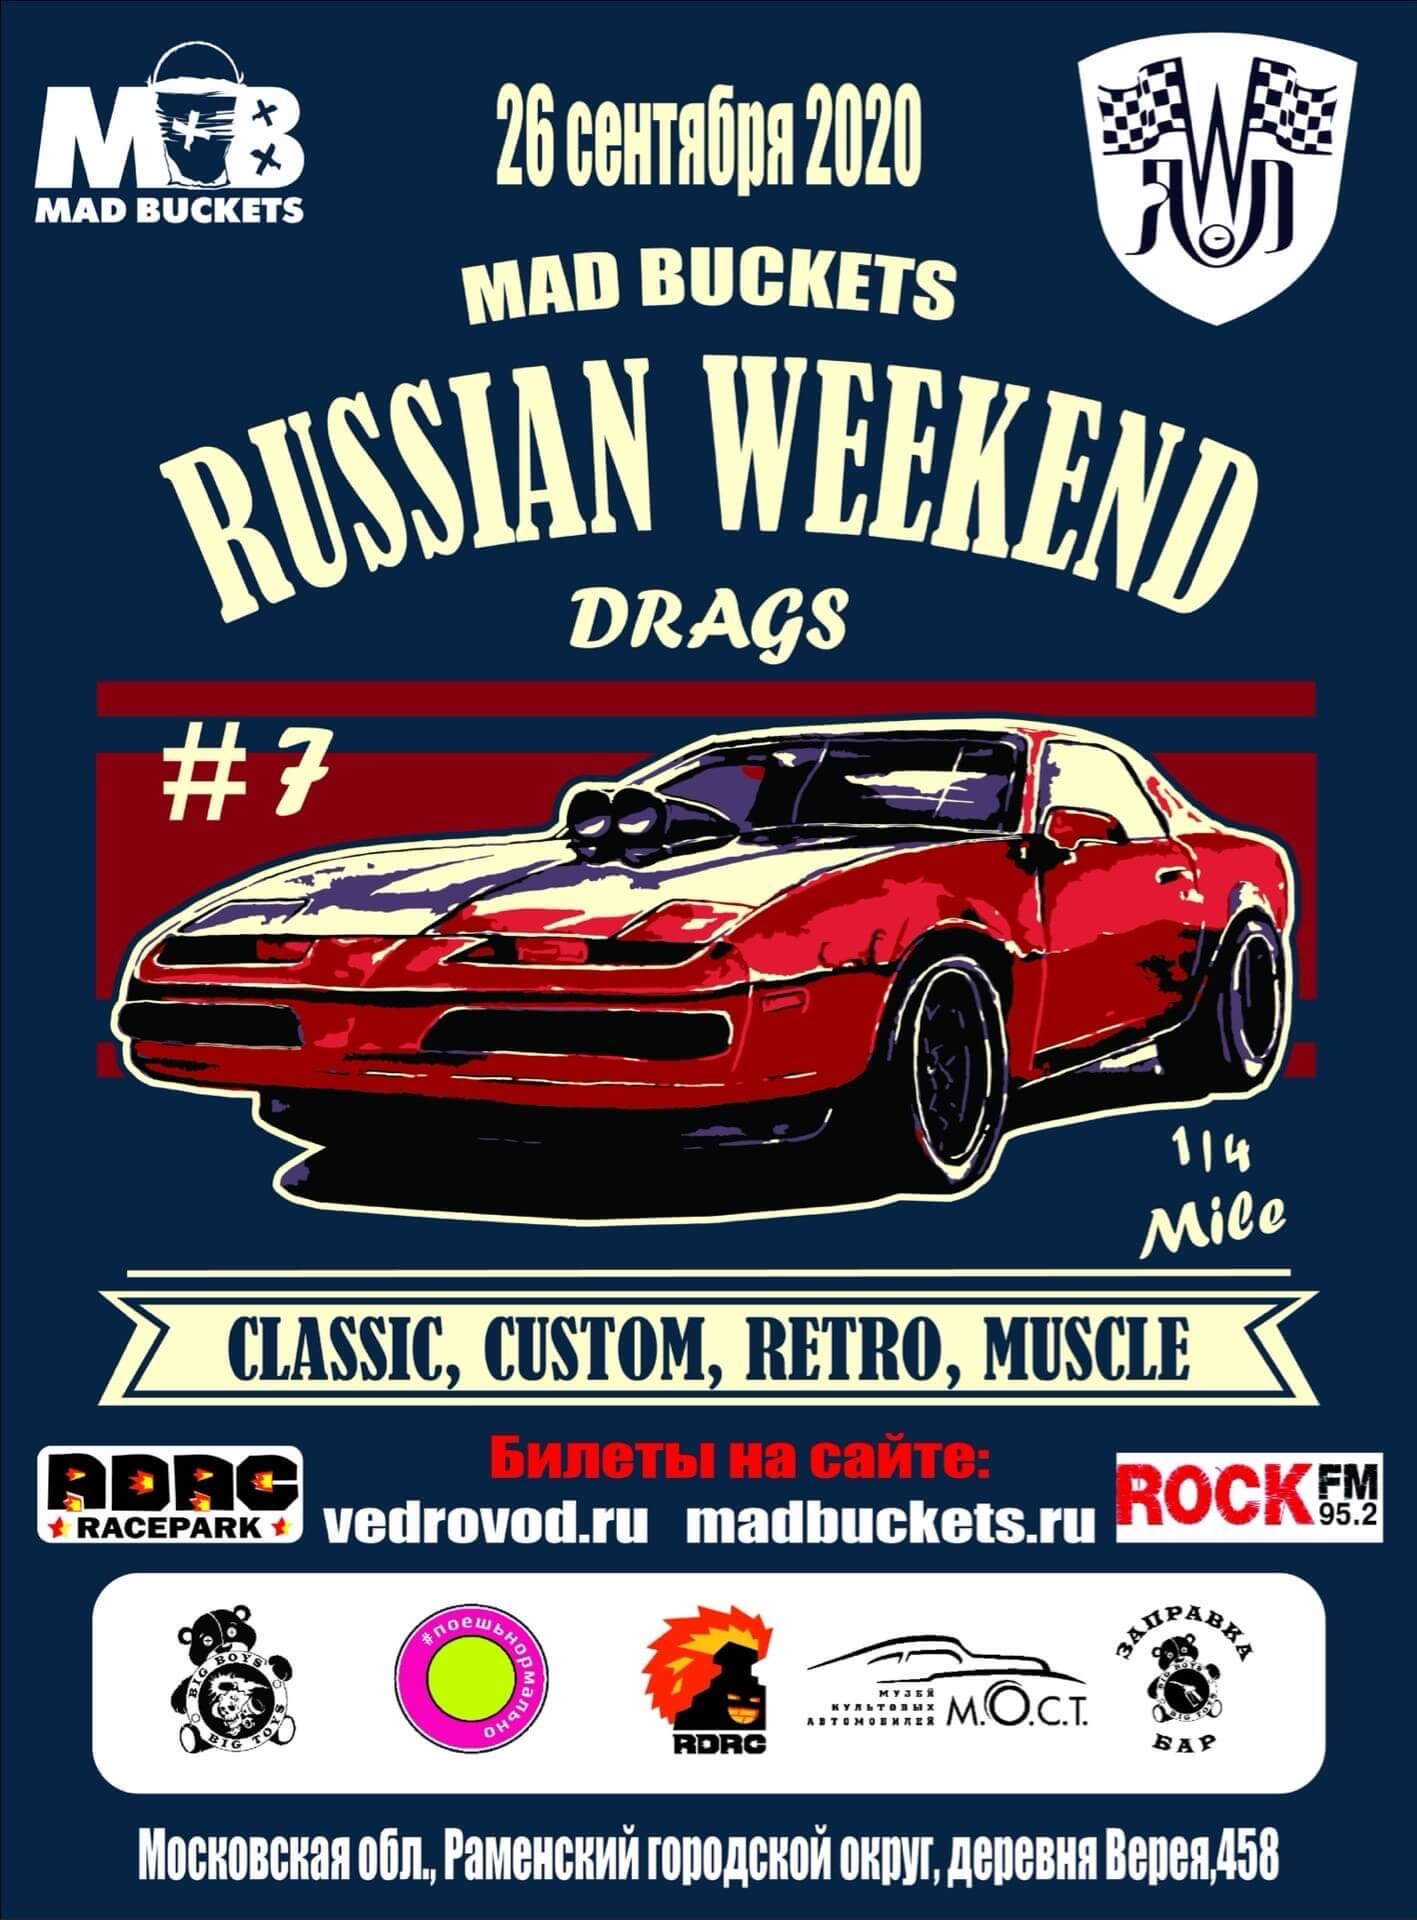 Москва: Russian Weekend Drags / 26 сентября 2020